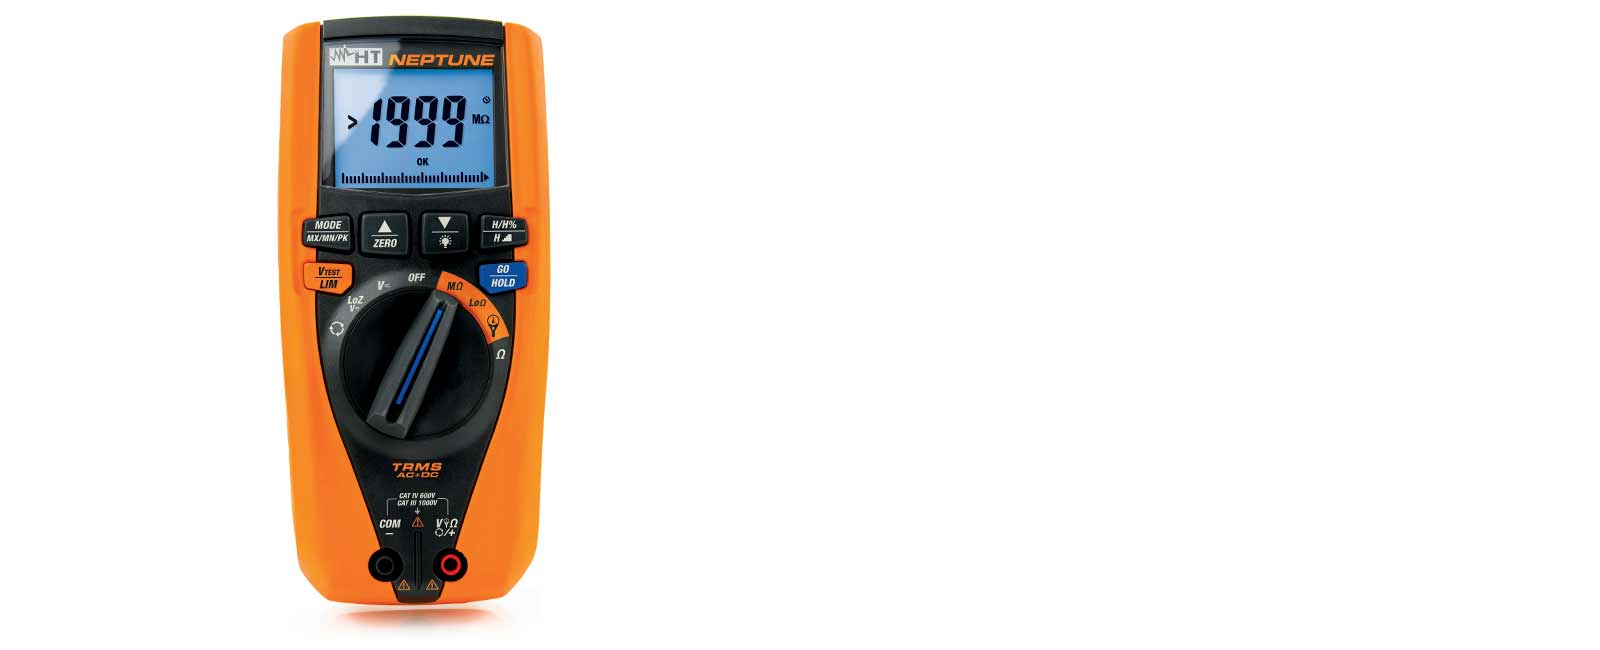 Multifunction Multimeter to test electrical safety